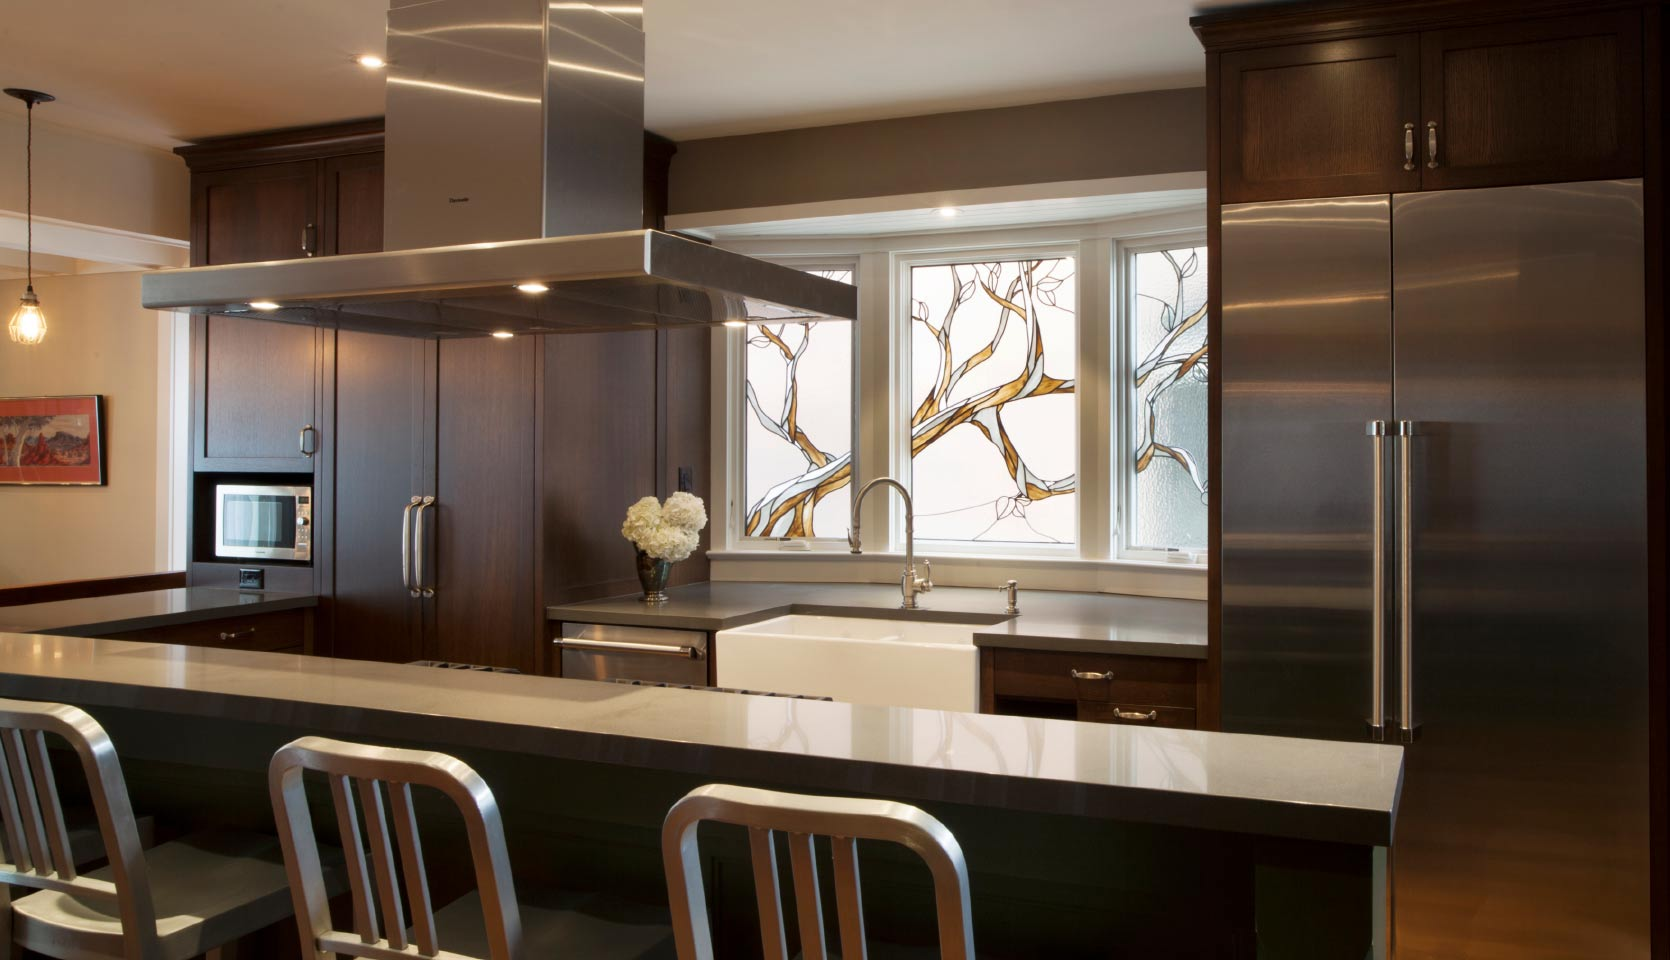 Playter-Estates-home-renovation-with-gourmet-kitchen-mahogany-cabinets-and-island-side-view